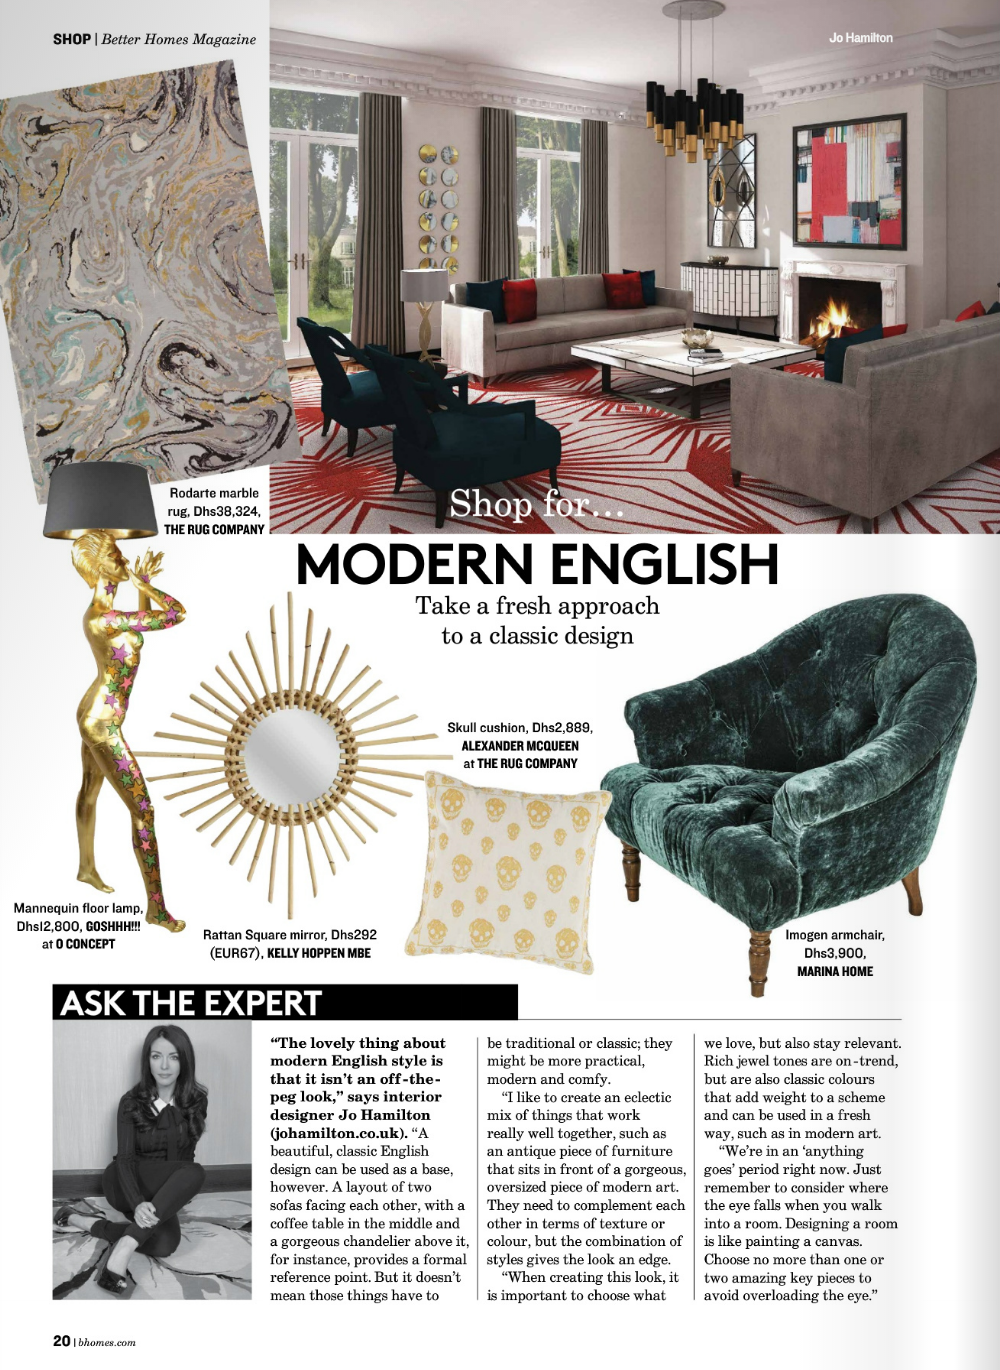 Jo Hamilton guide to luxury modern English interior design